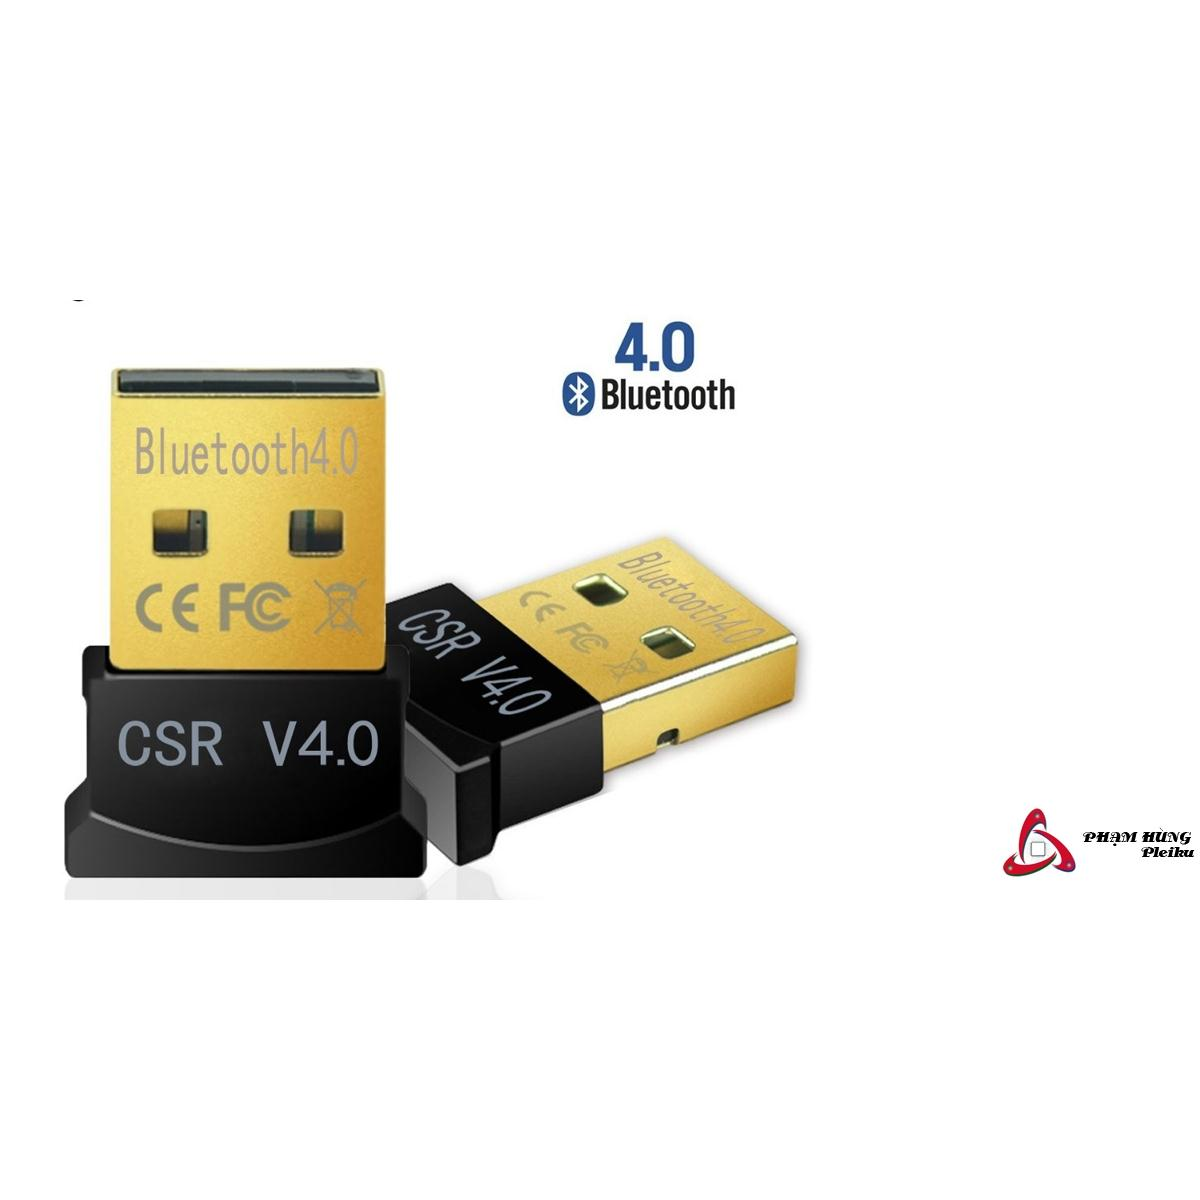 usb bluetooth 4.0 csr ps3/ps4/xbox one